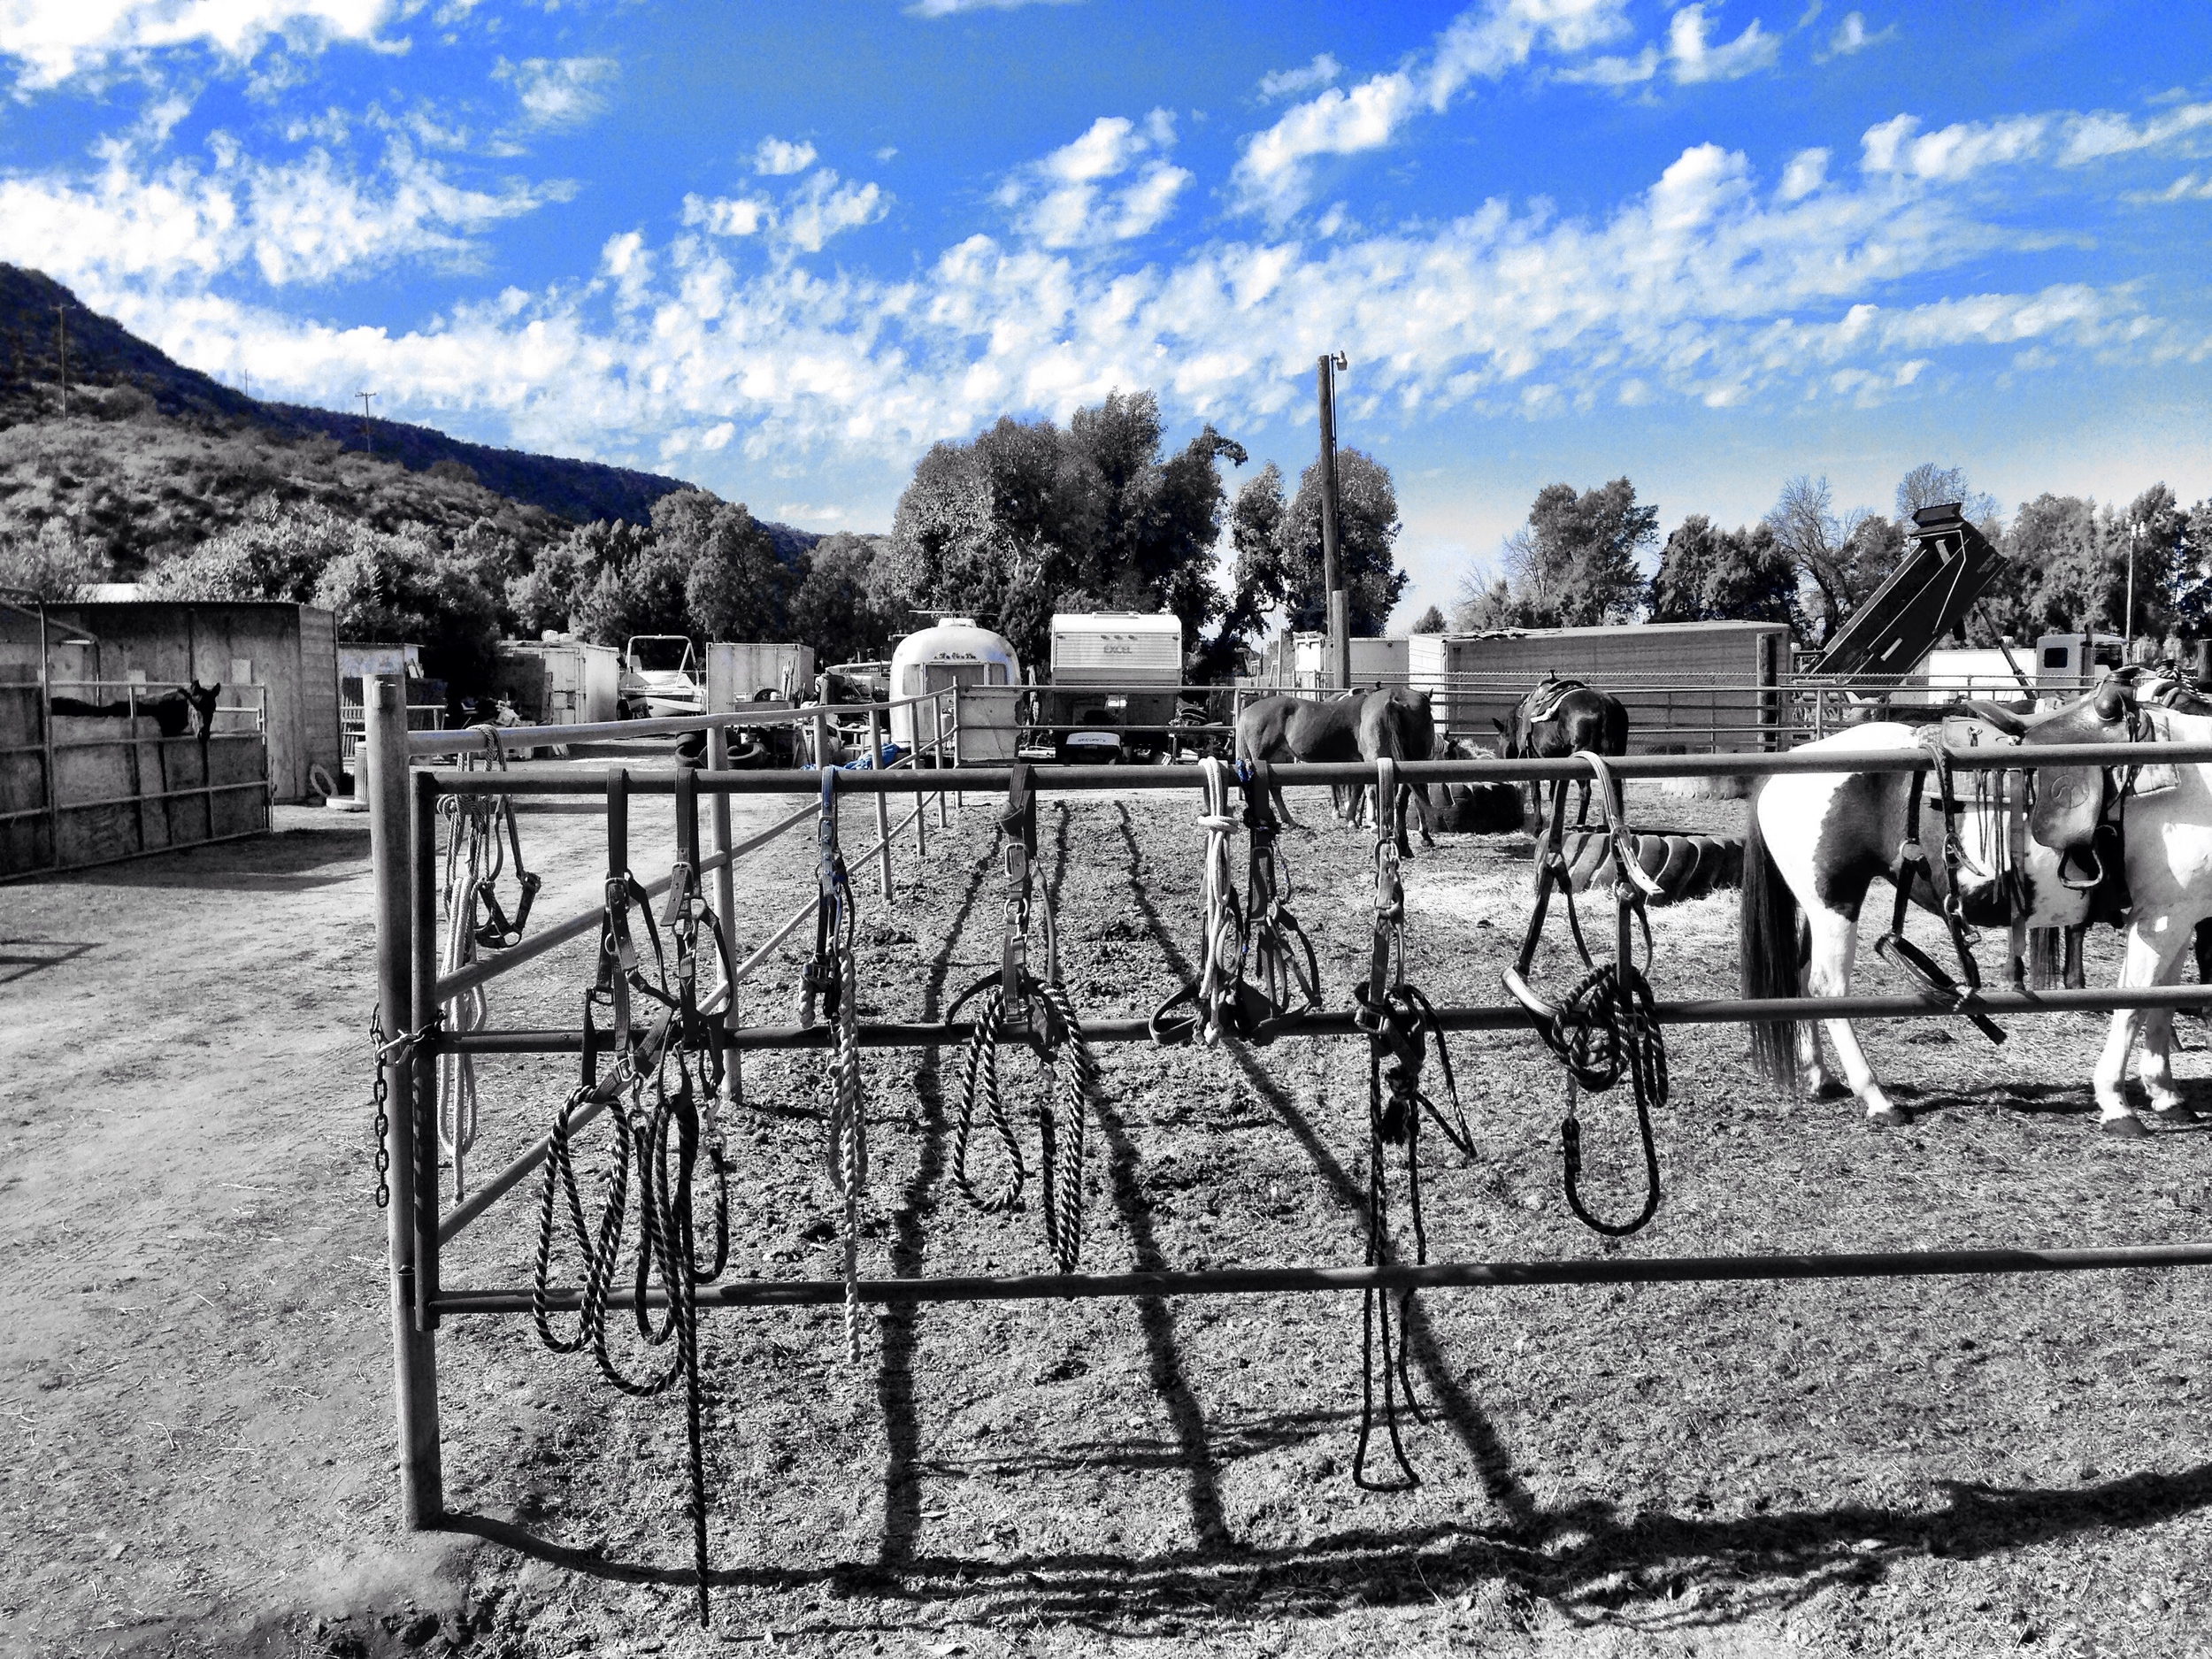 Memories of lessons learned, cowgirl style.